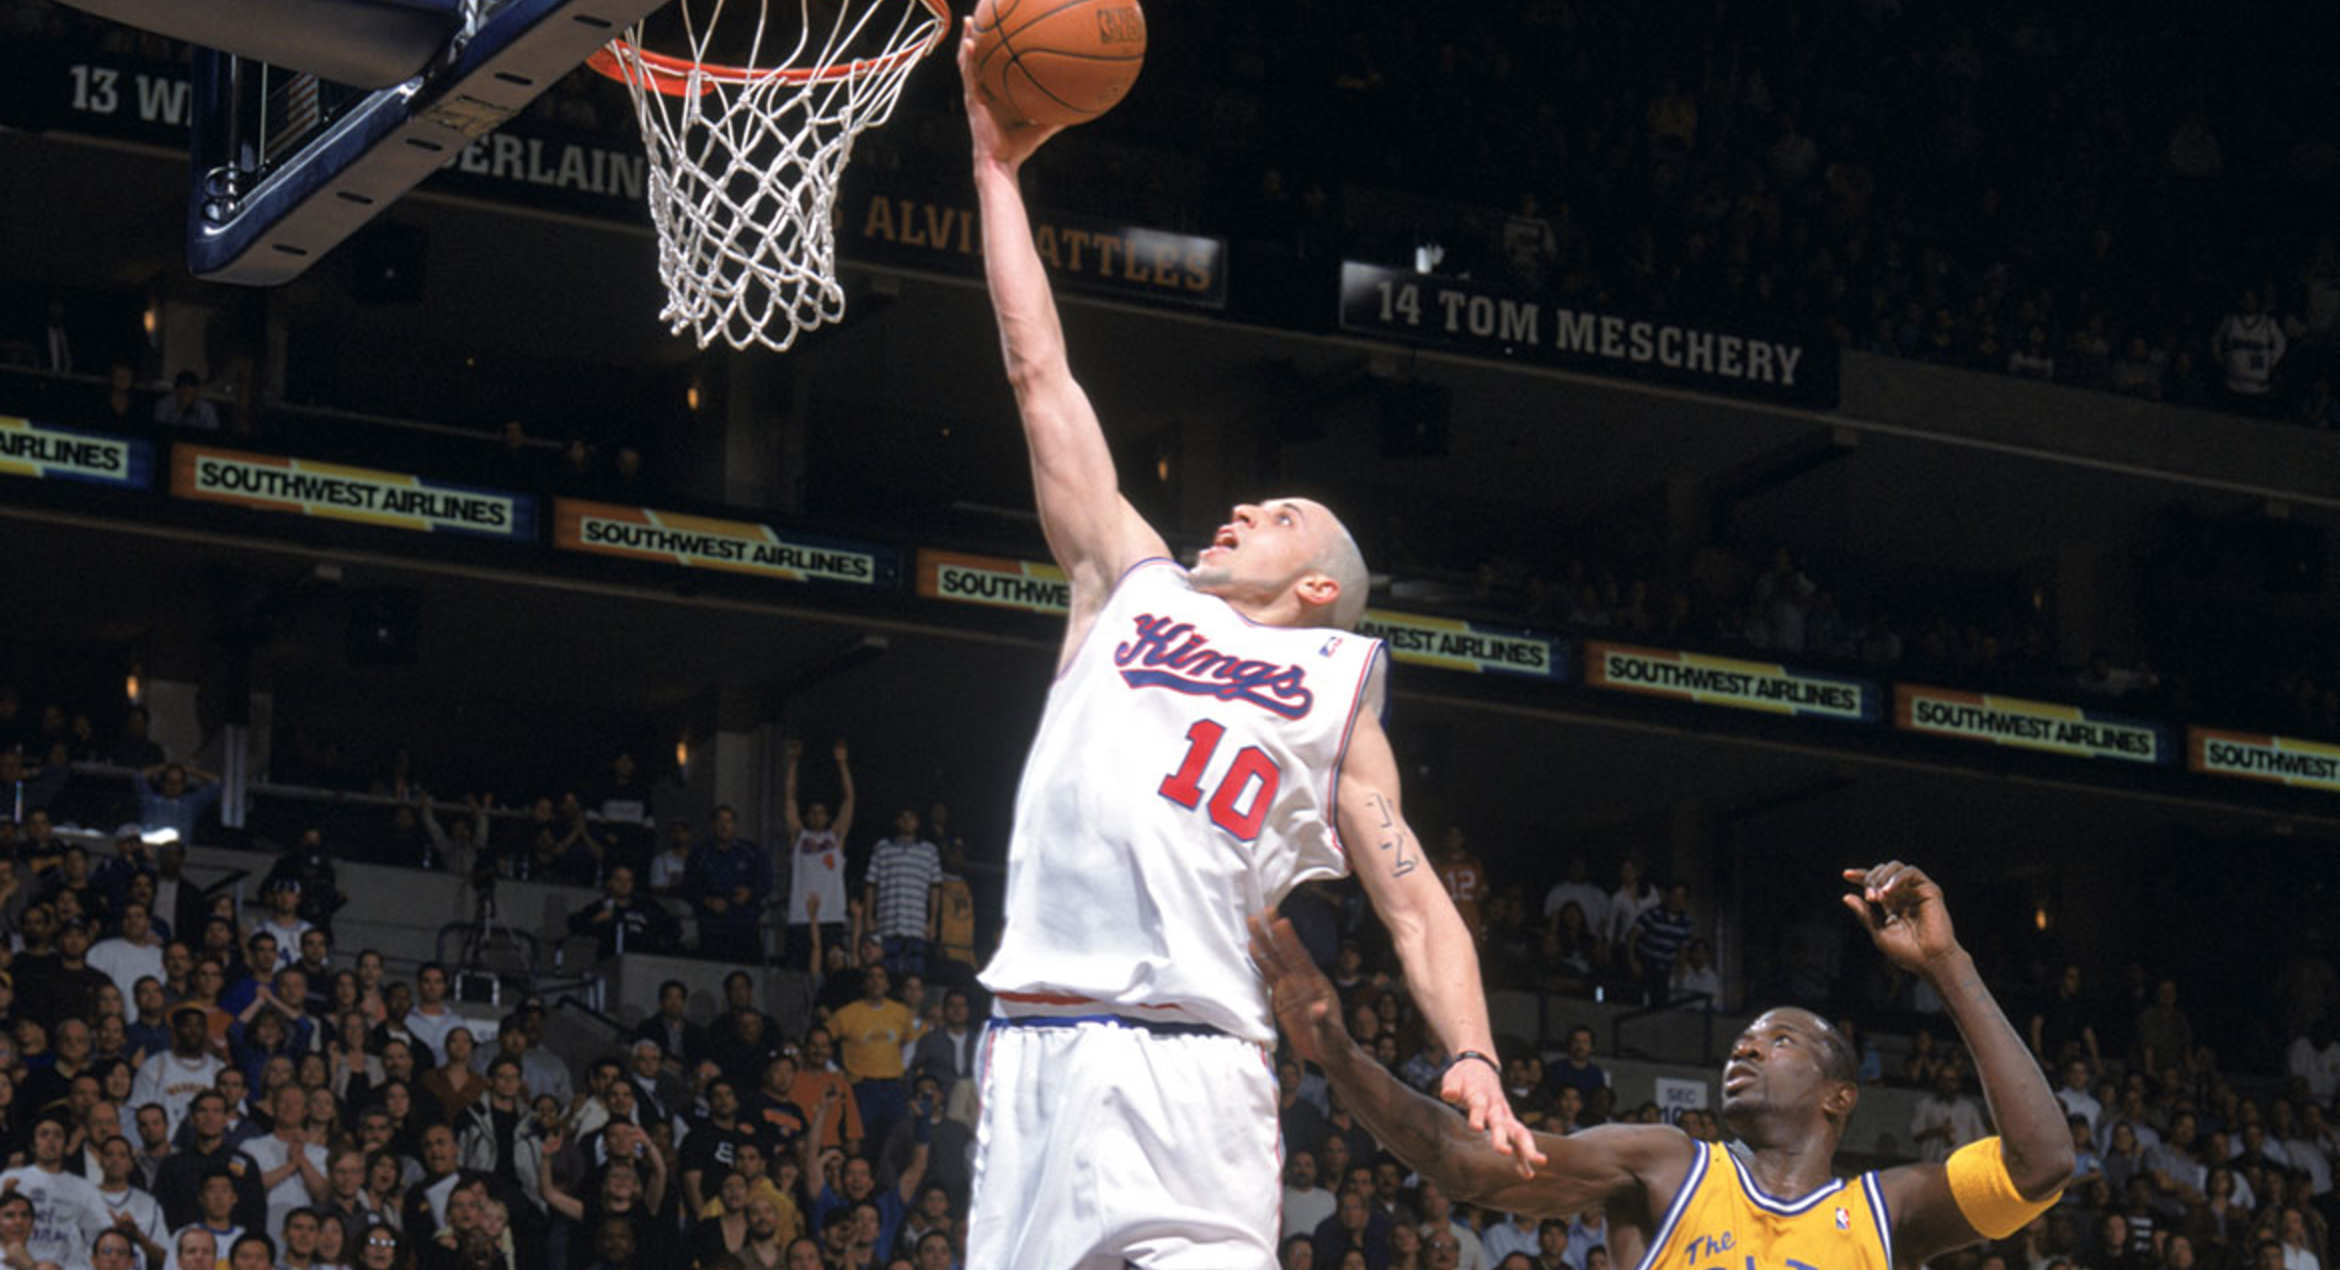 ae69a7af4 37-Year-Old Mike Bibby Can Still Dunk